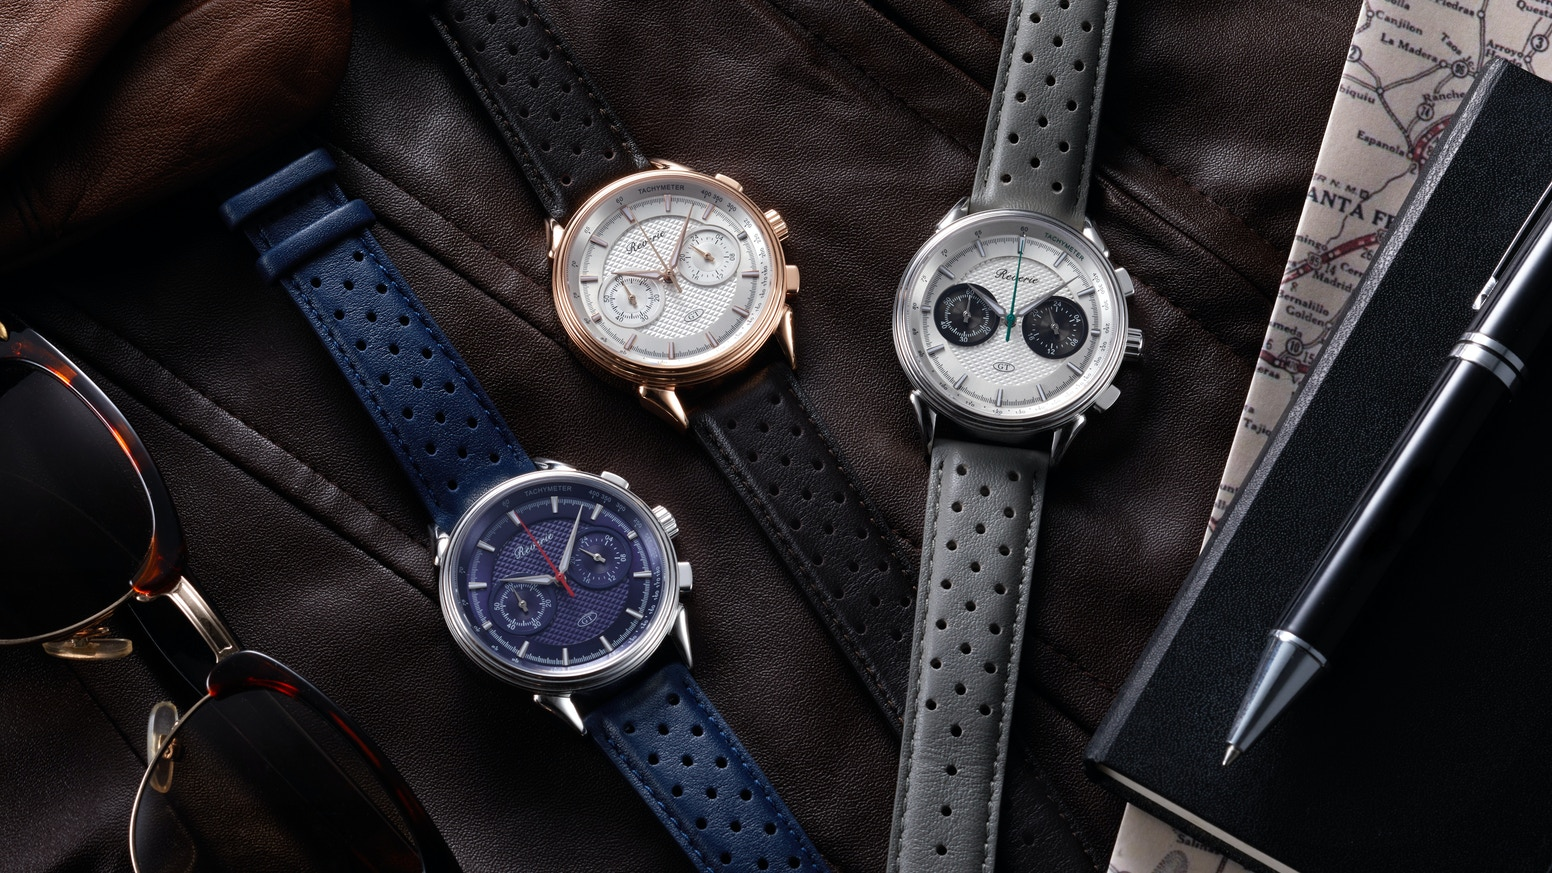 Our third watch collection - expect our trademark guilloché dial, coupe-inspired lugs, sapphire crystaI, Italian leather straps & more.